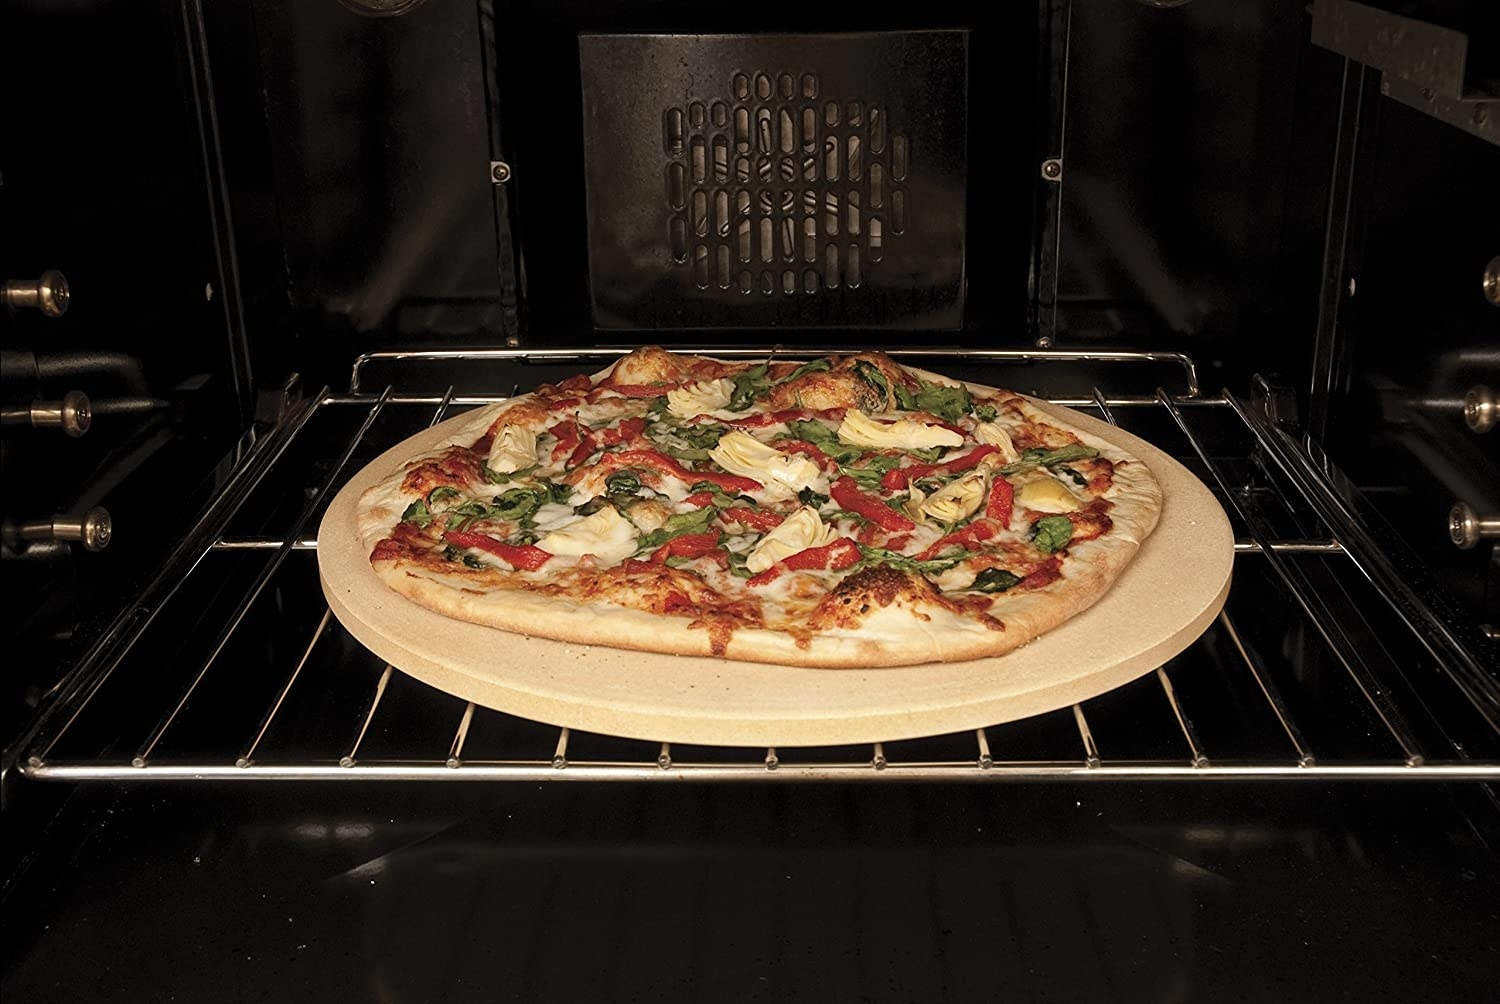 a pizza bakes on a pizza stone in oven